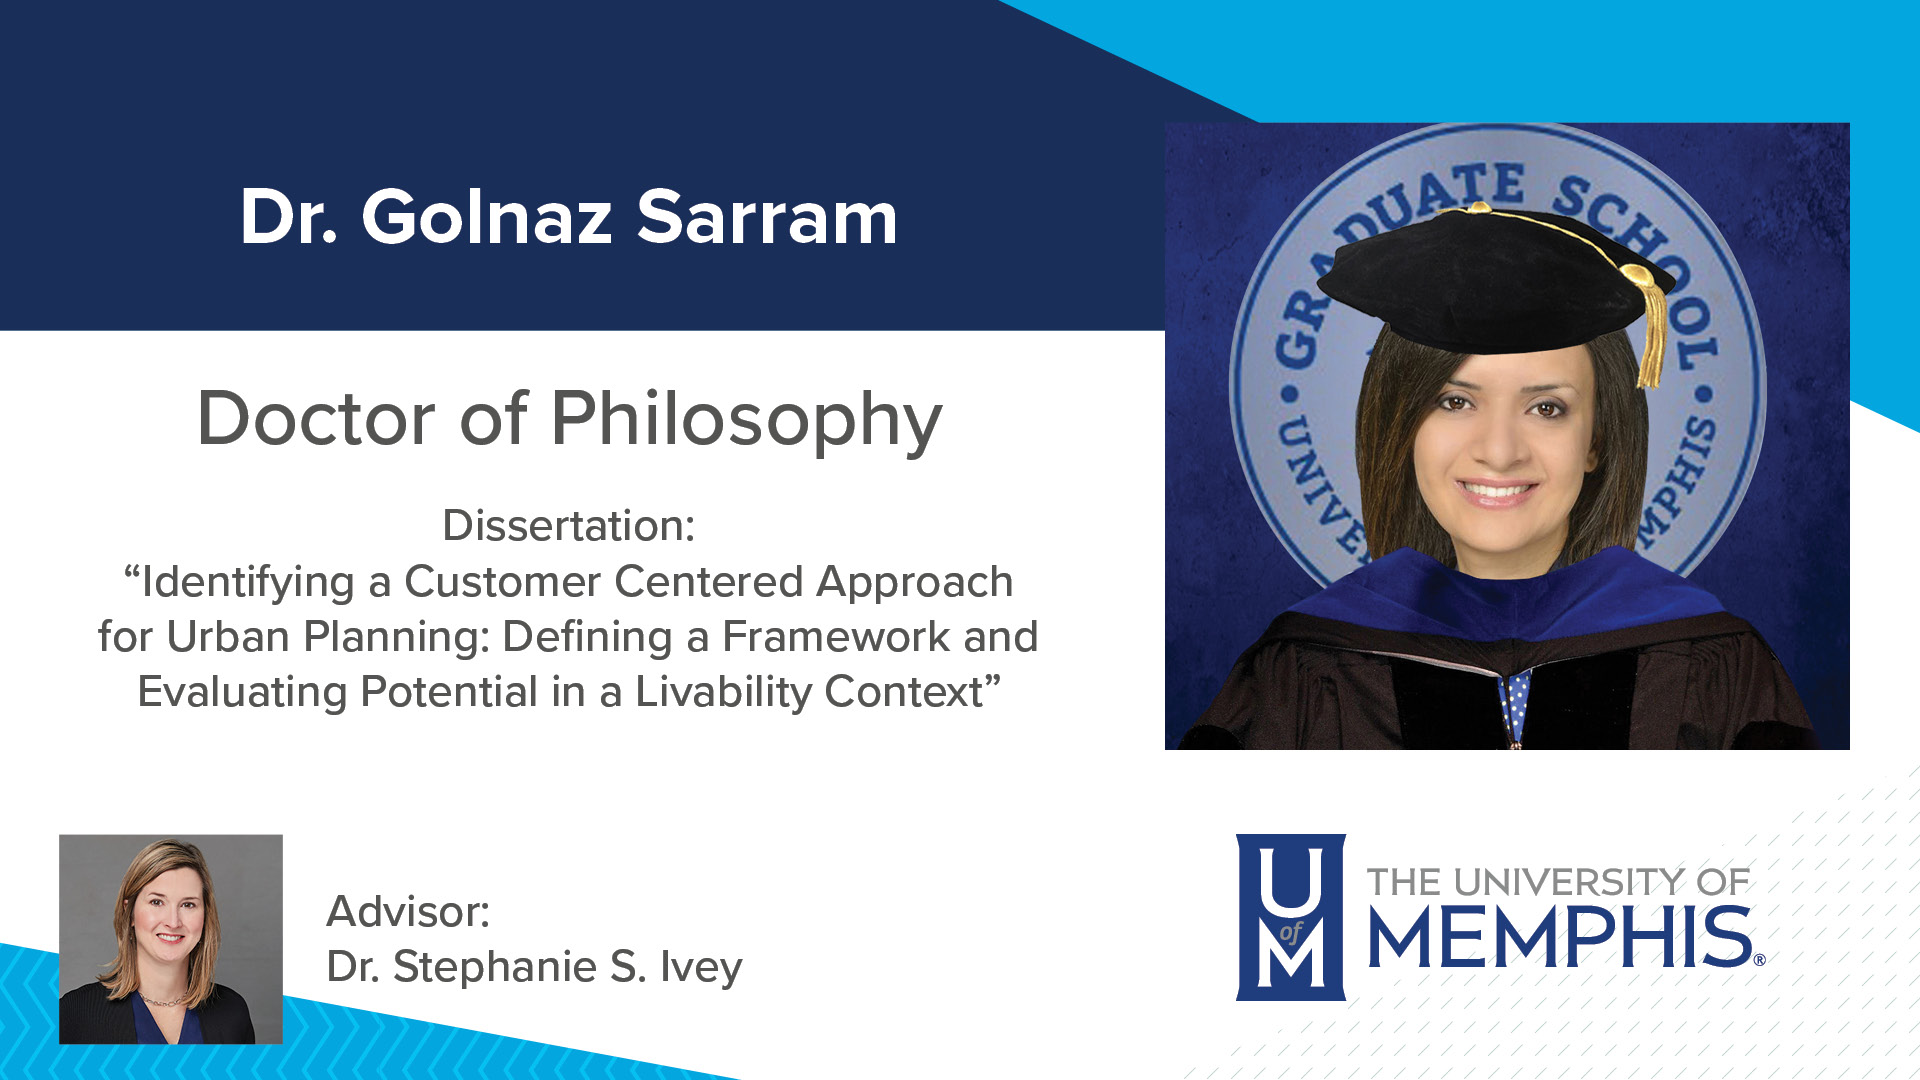 """Dr. Golnaz Sarram Dissertation: """"Identifying a Customer Centered Approach for Urban Planning: Defining a Framework and Evaluating Potential In a Livability Context"""" Major Professor: Dr. Stephanie S. Ivey"""